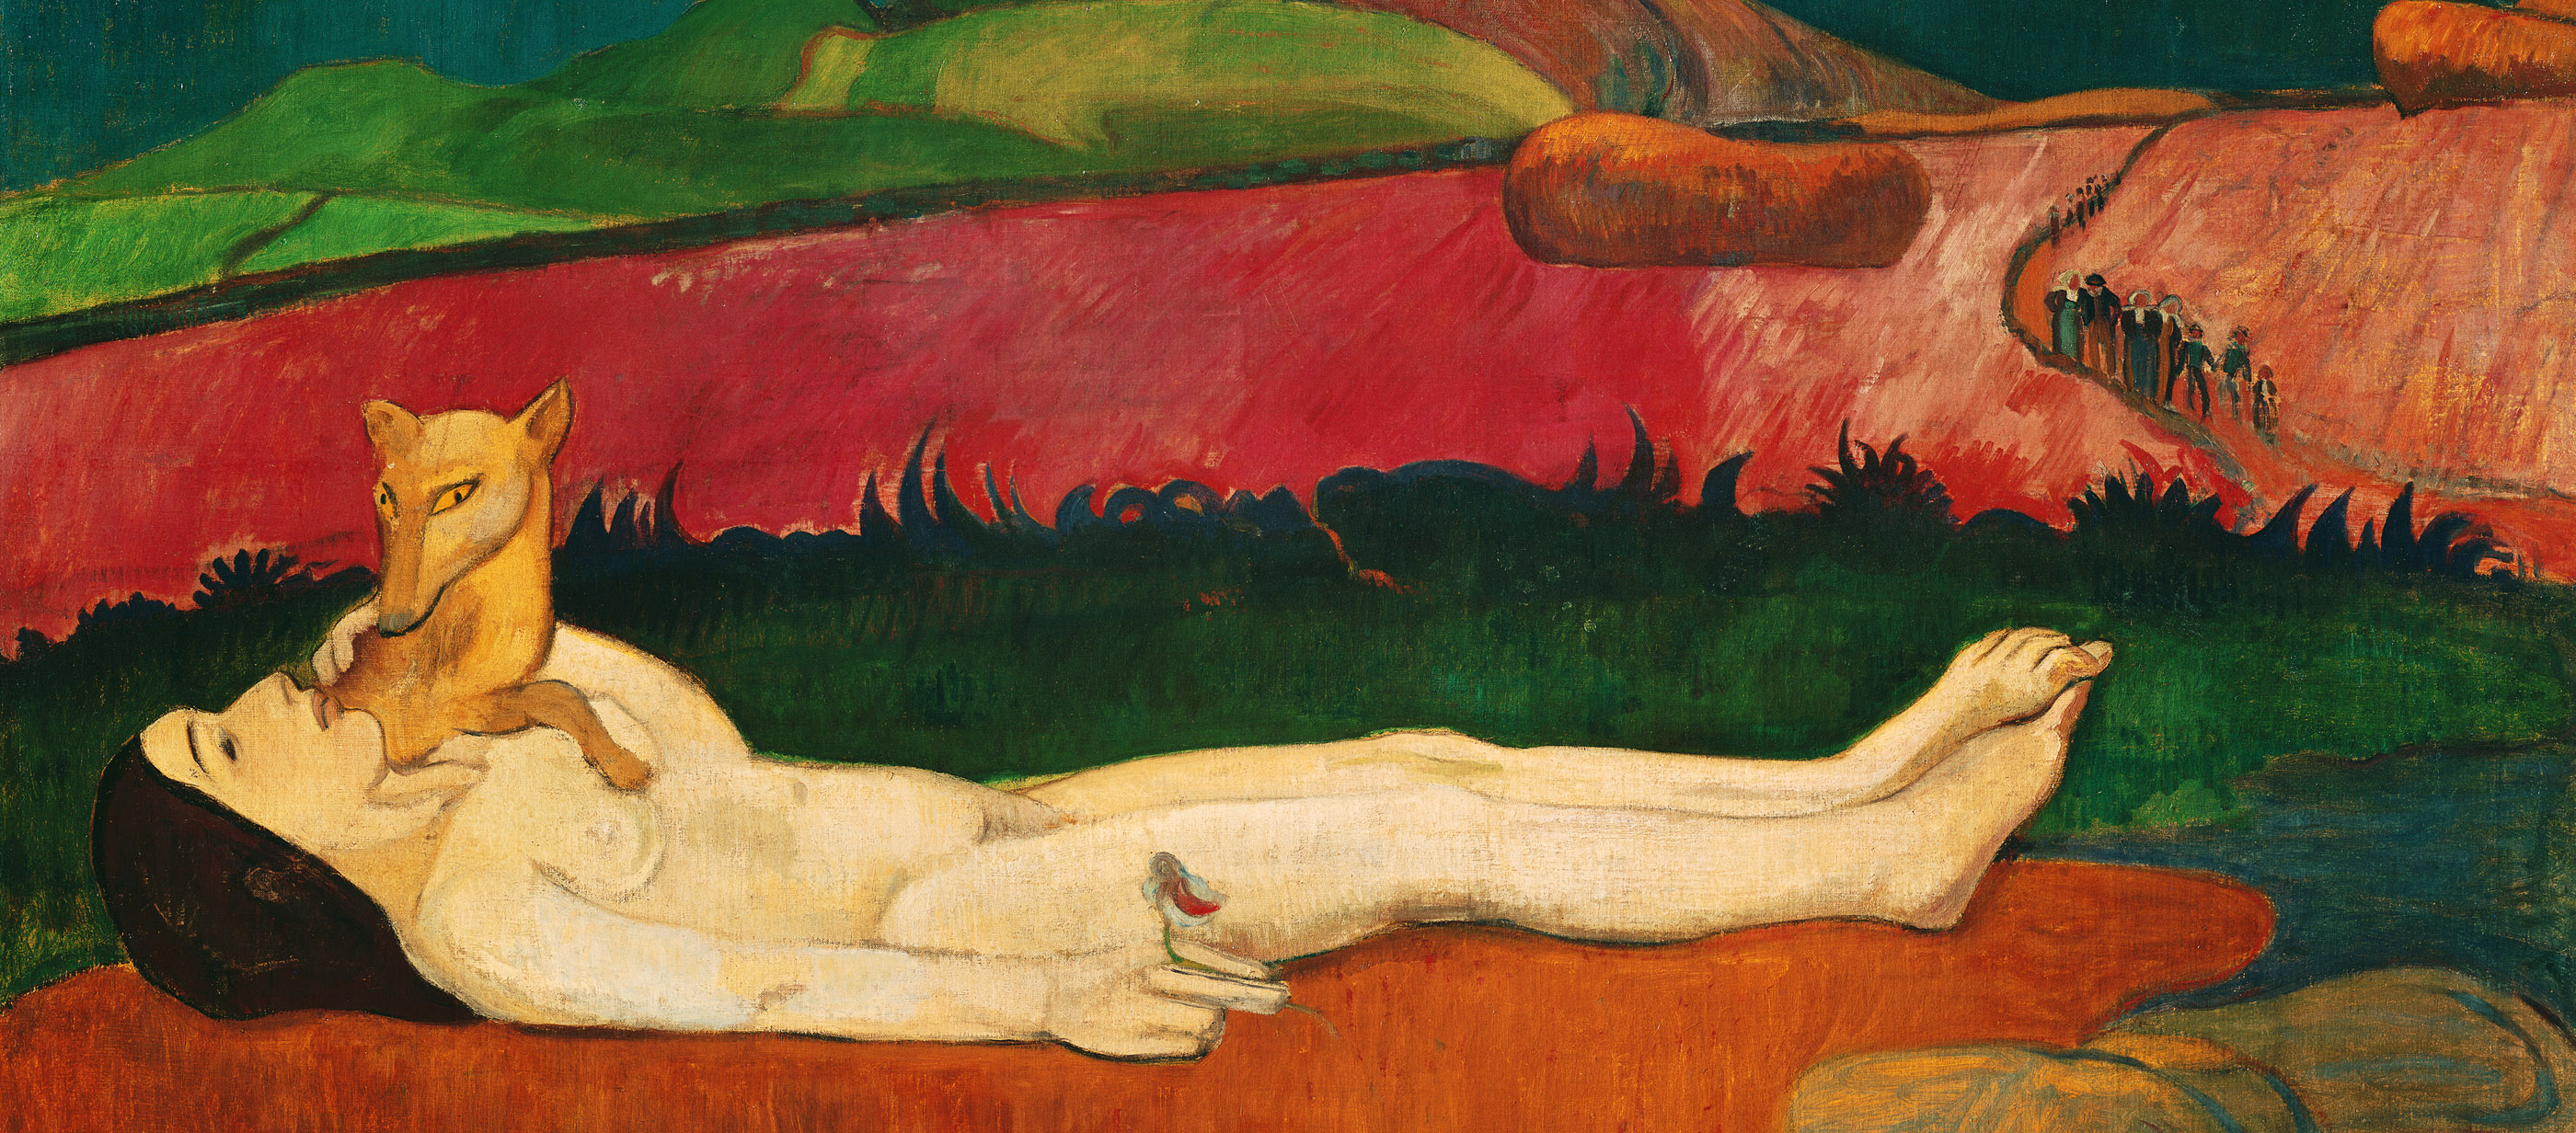 Adore gauguin loss of virginity fucking